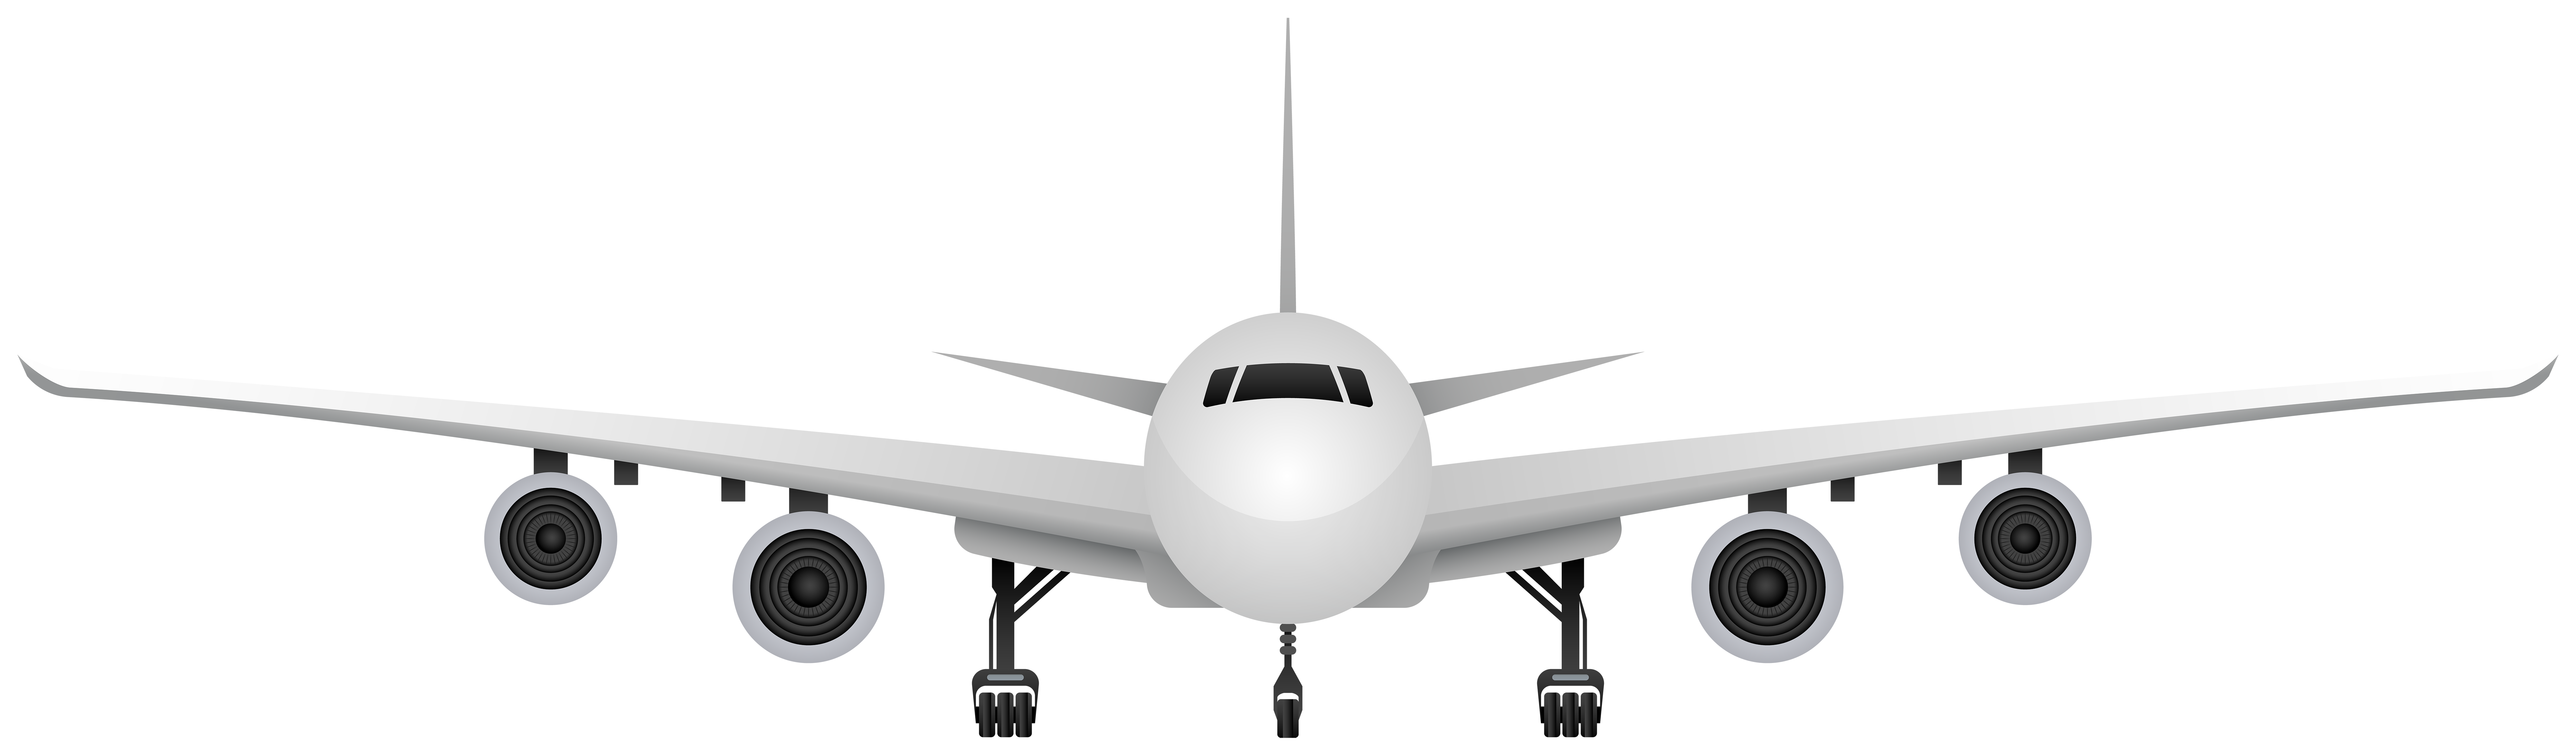 Airplane PNG Clip Art Image.